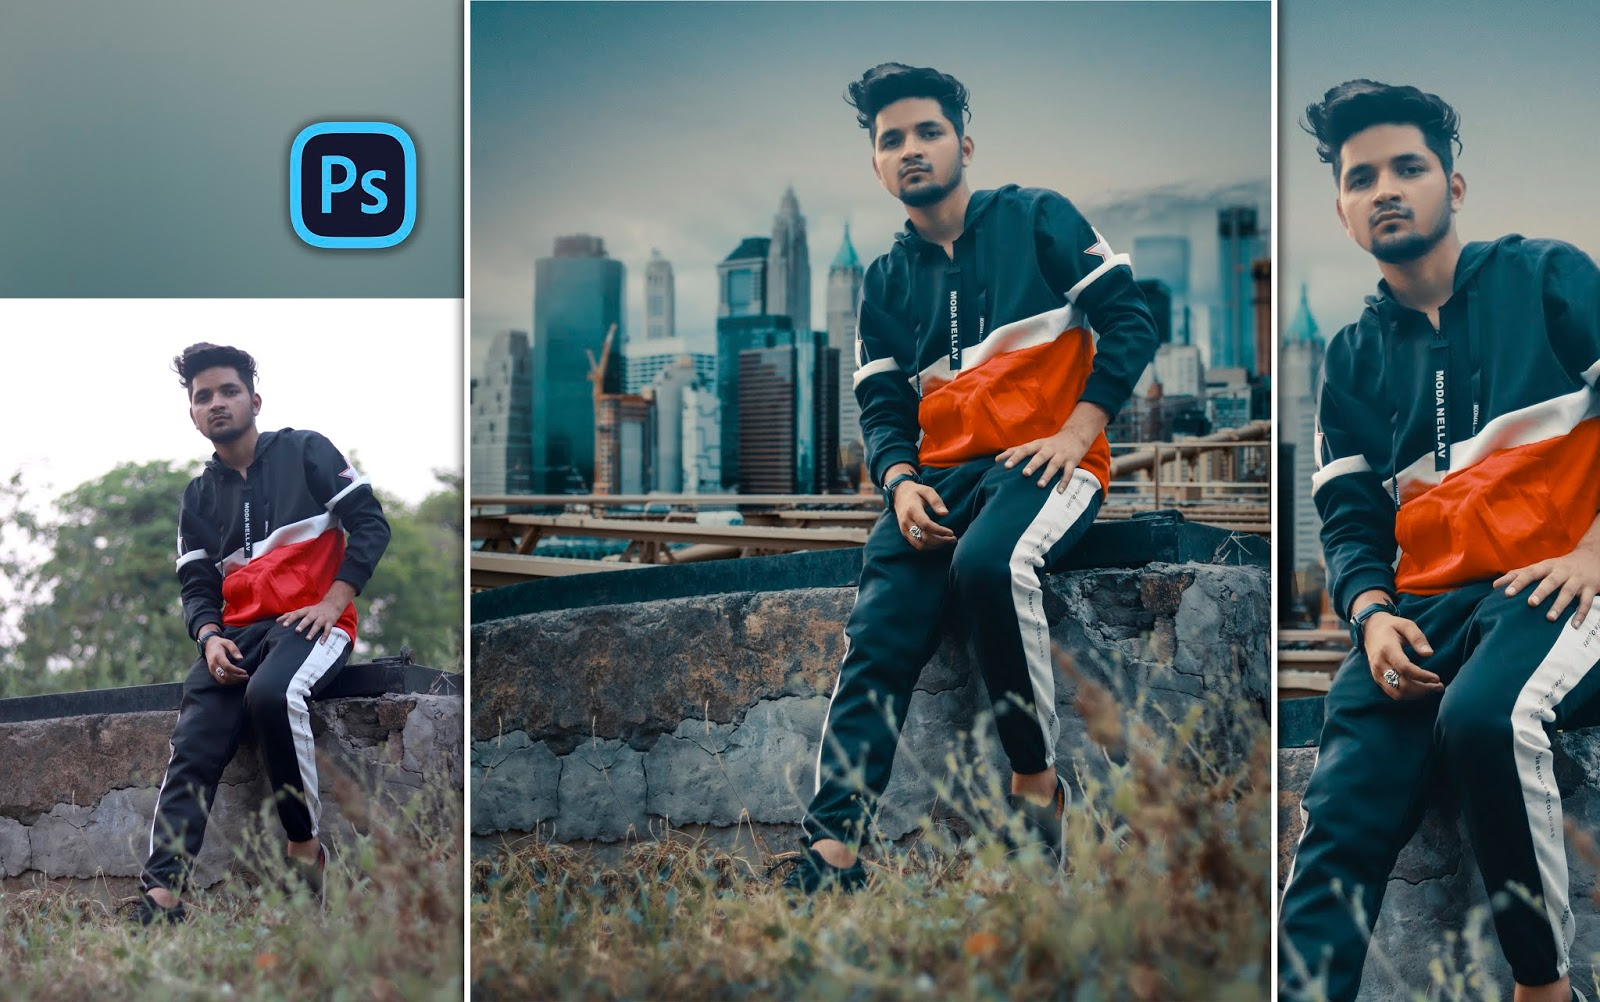 Instagram Style Cinematic Photo Manipulation for Men in Photoshop cc